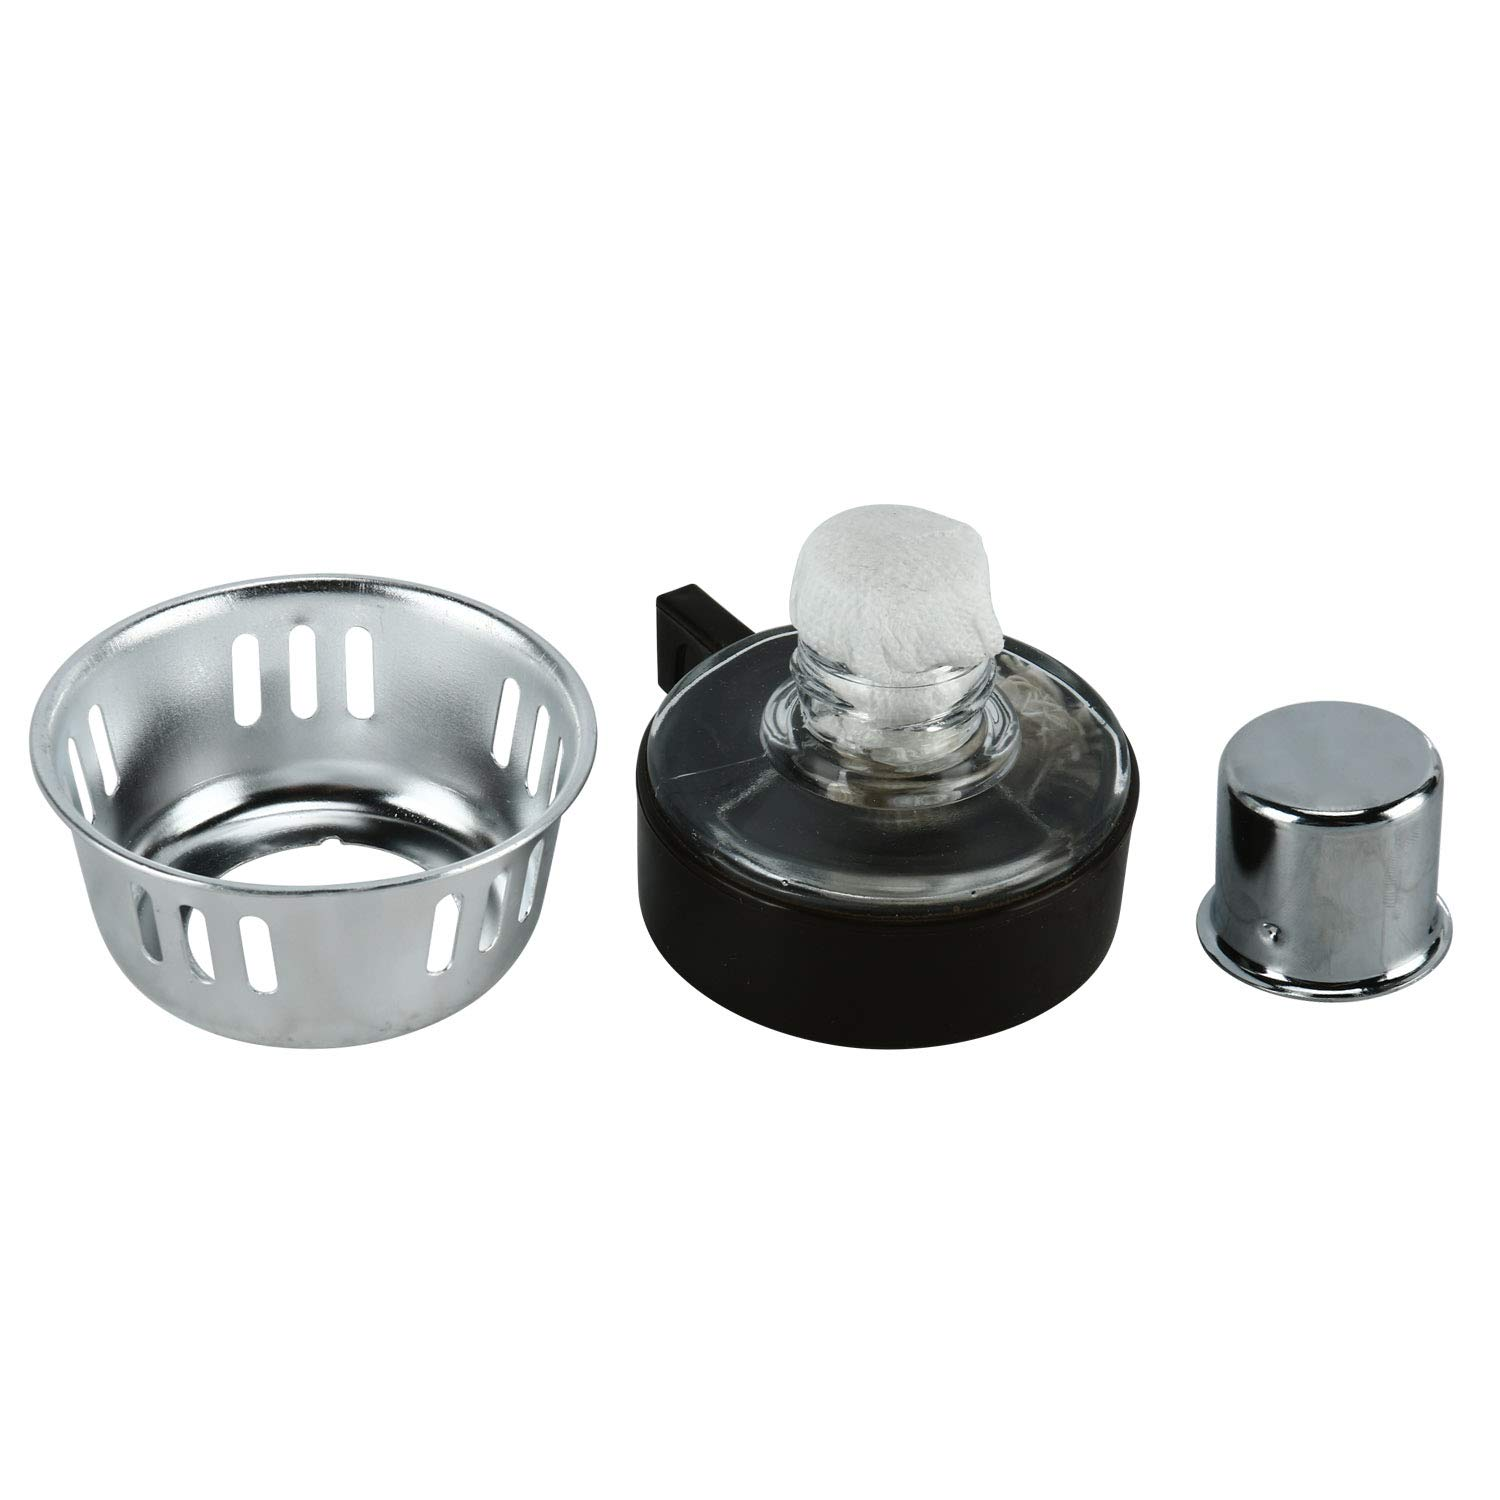 Boeng Tabletop Siphon (Syphon) Coffee Maker with Alcohol Burner, Plastic Coffee Powder Spoon, Filter Cloth and Wooden Stirrer (3 Cups) by BOENG (Image #5)